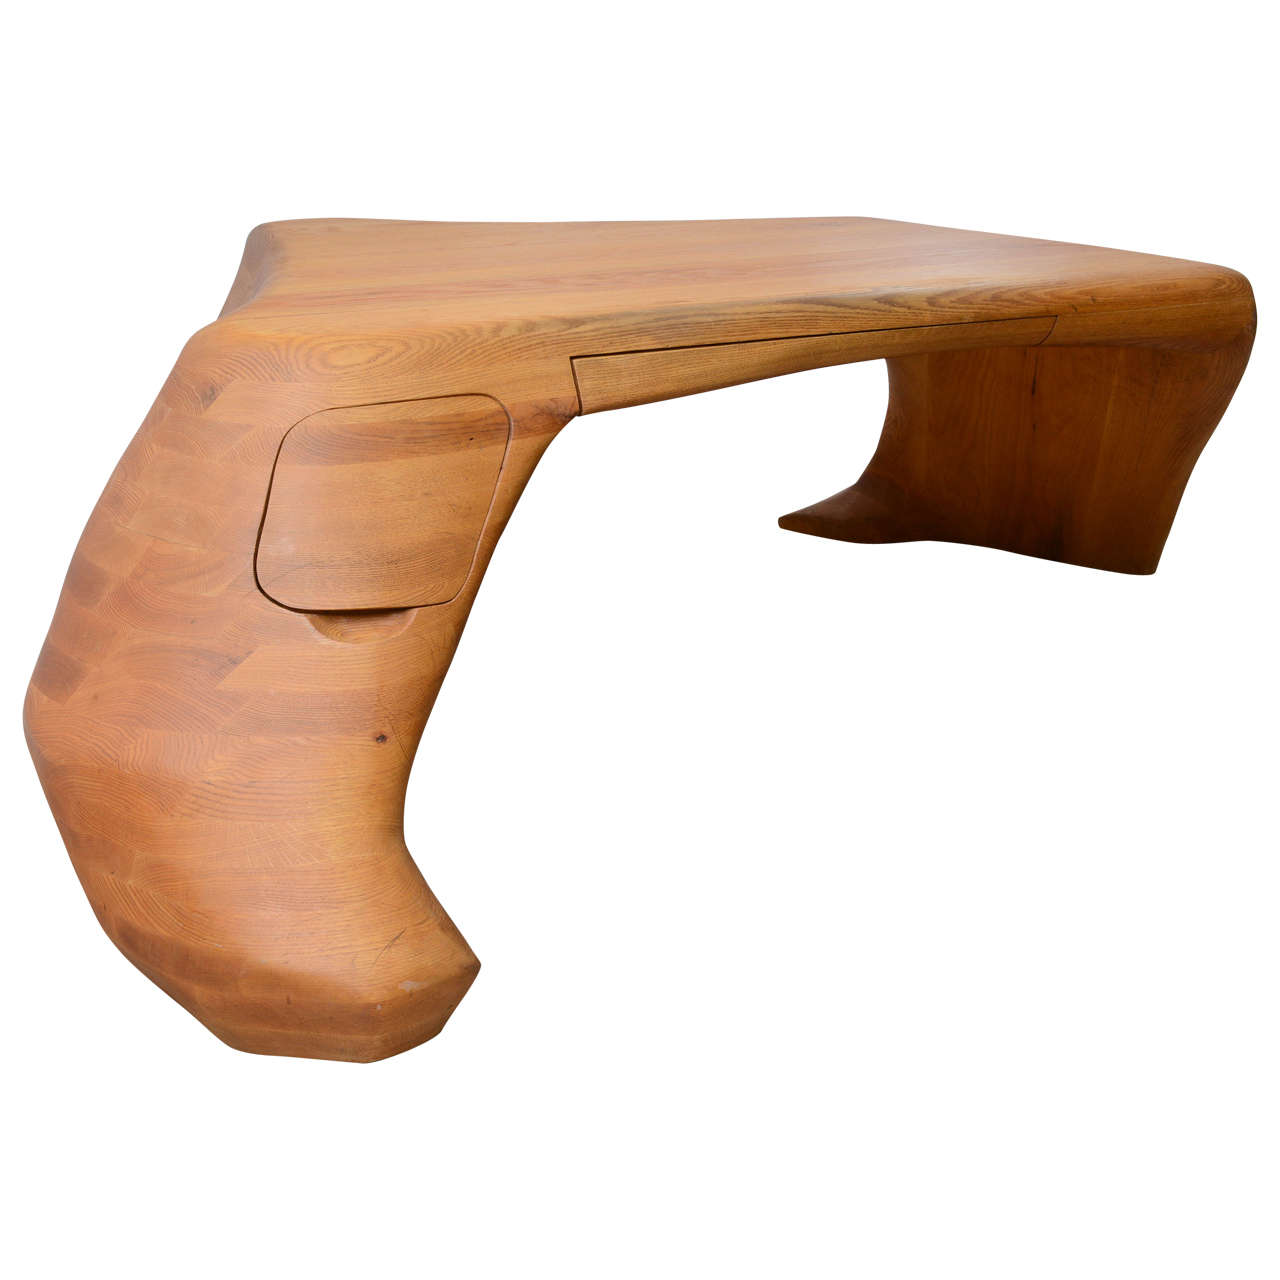 spectacular studio craft movement biomorphic desk at 1stdibs